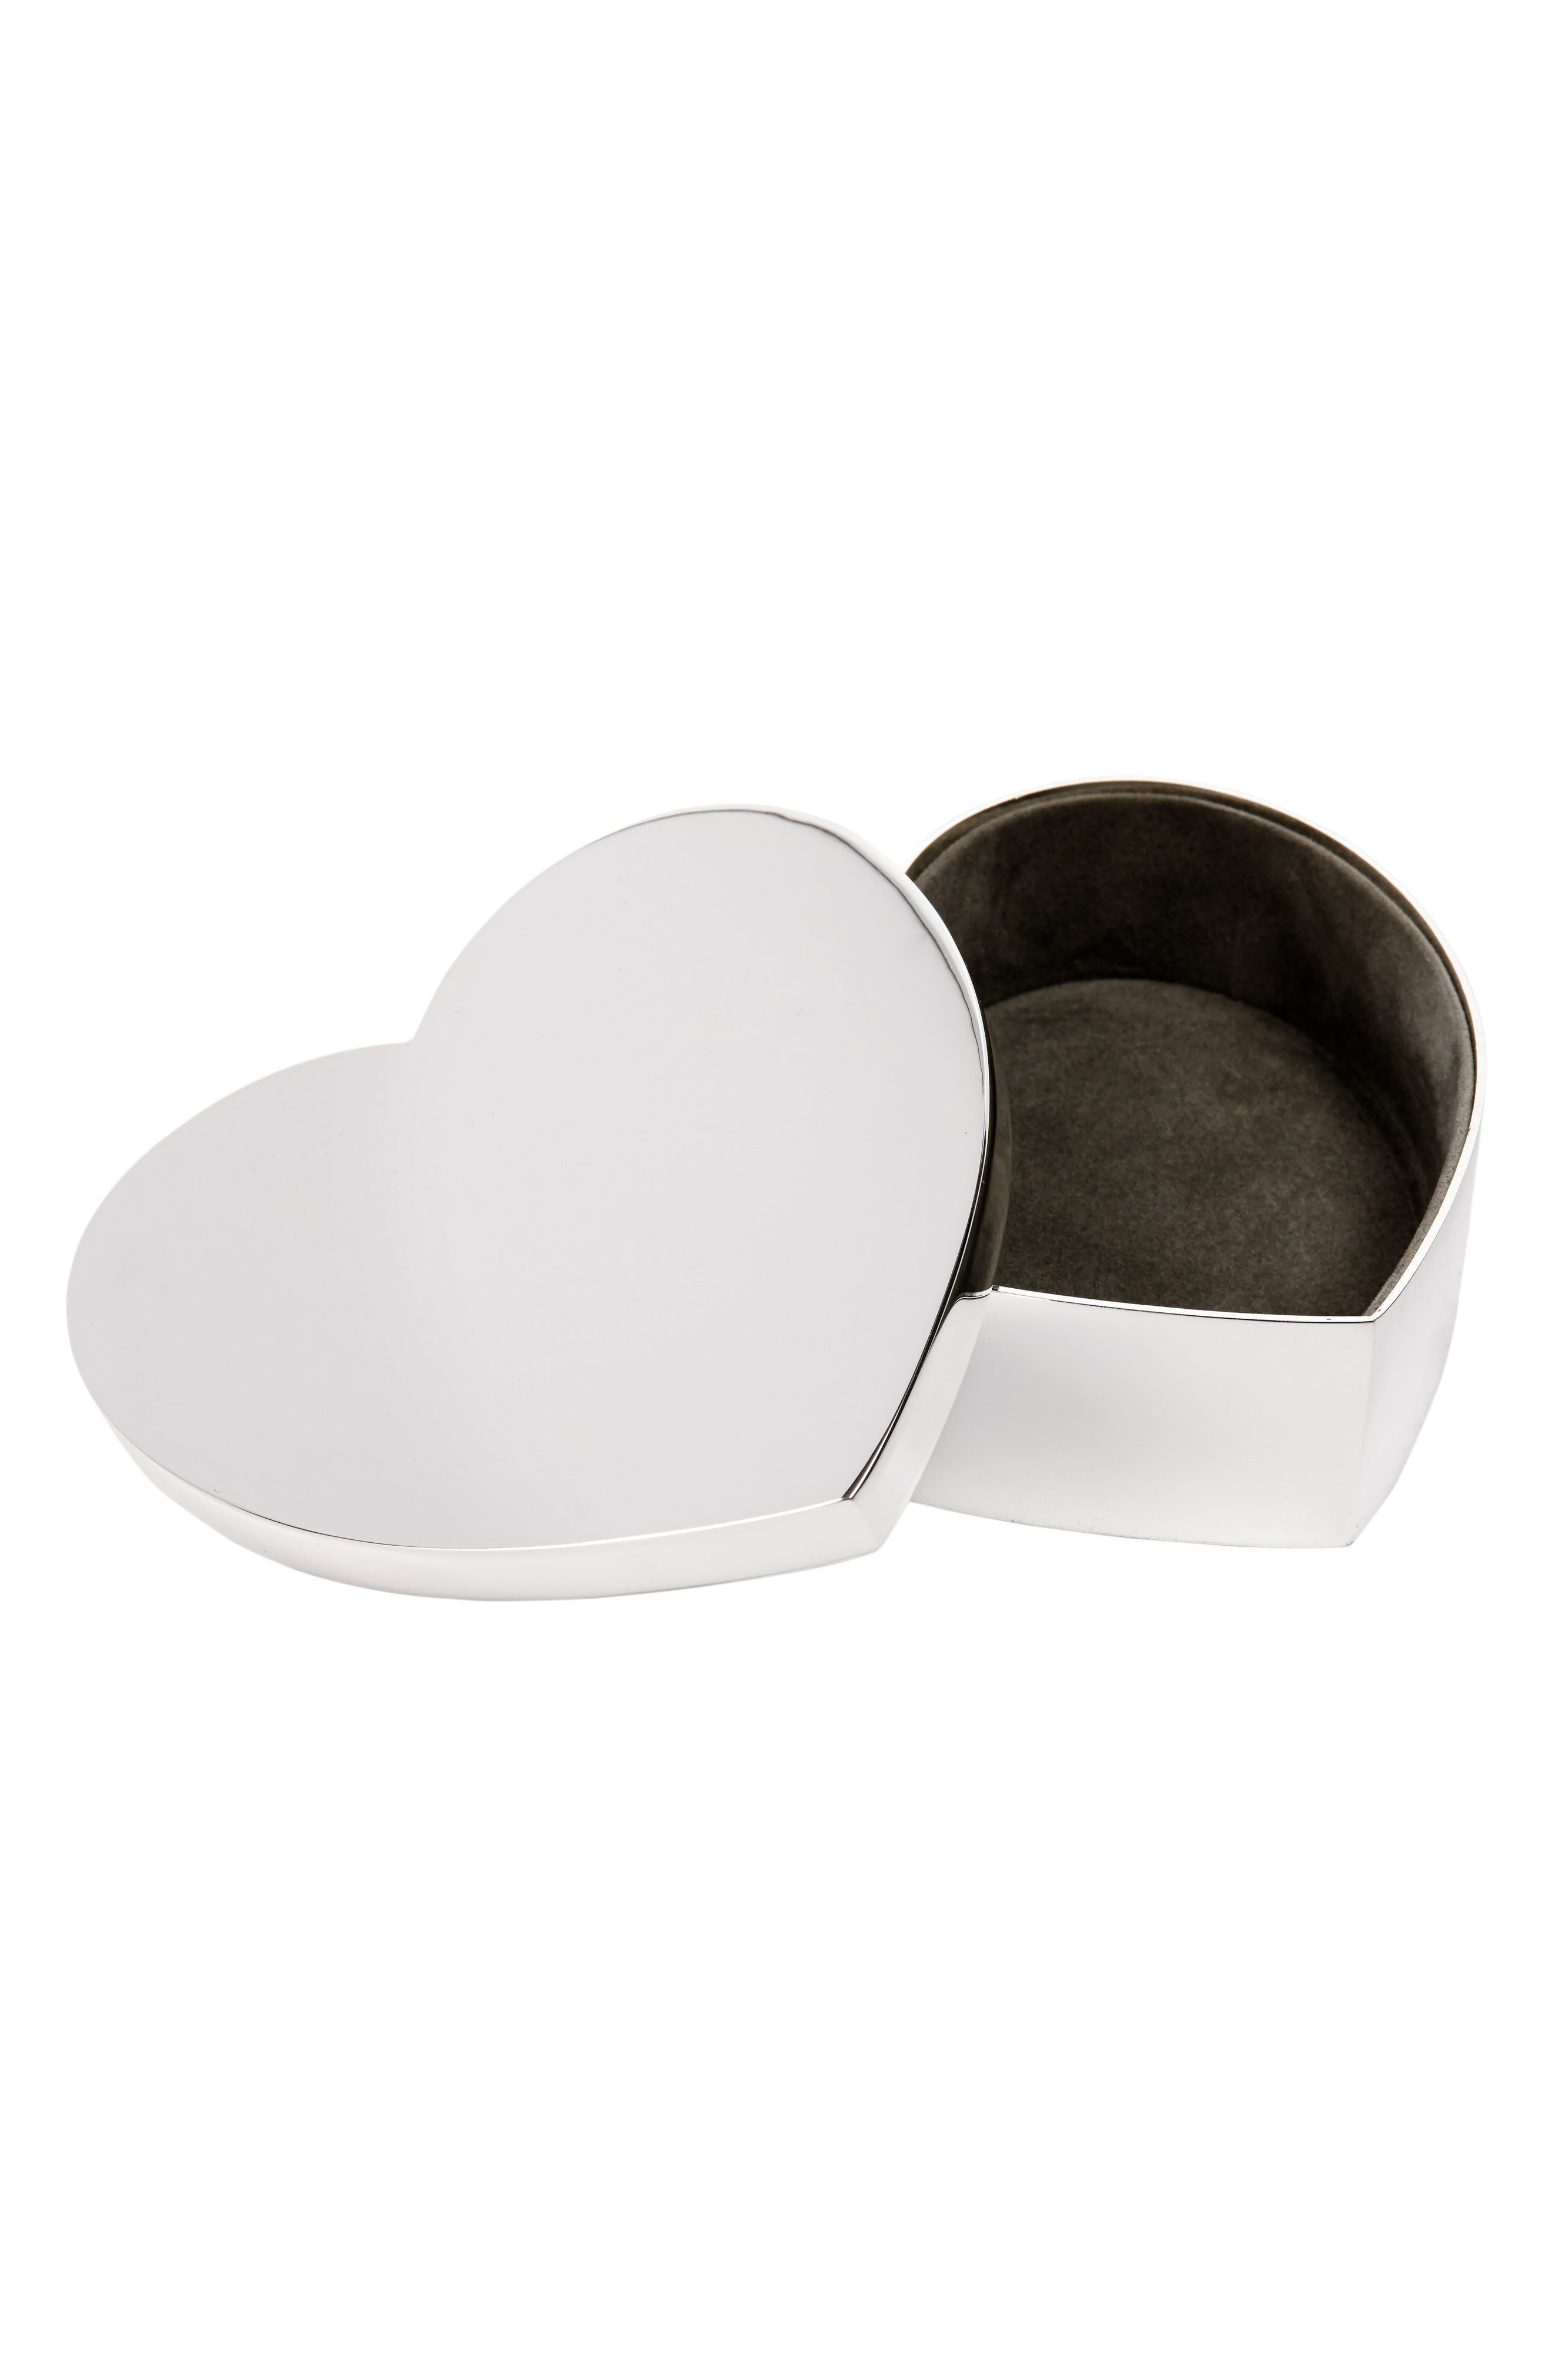 THE WHITE COMPANY Silver Plated Heart Box, Main, color, SILVER